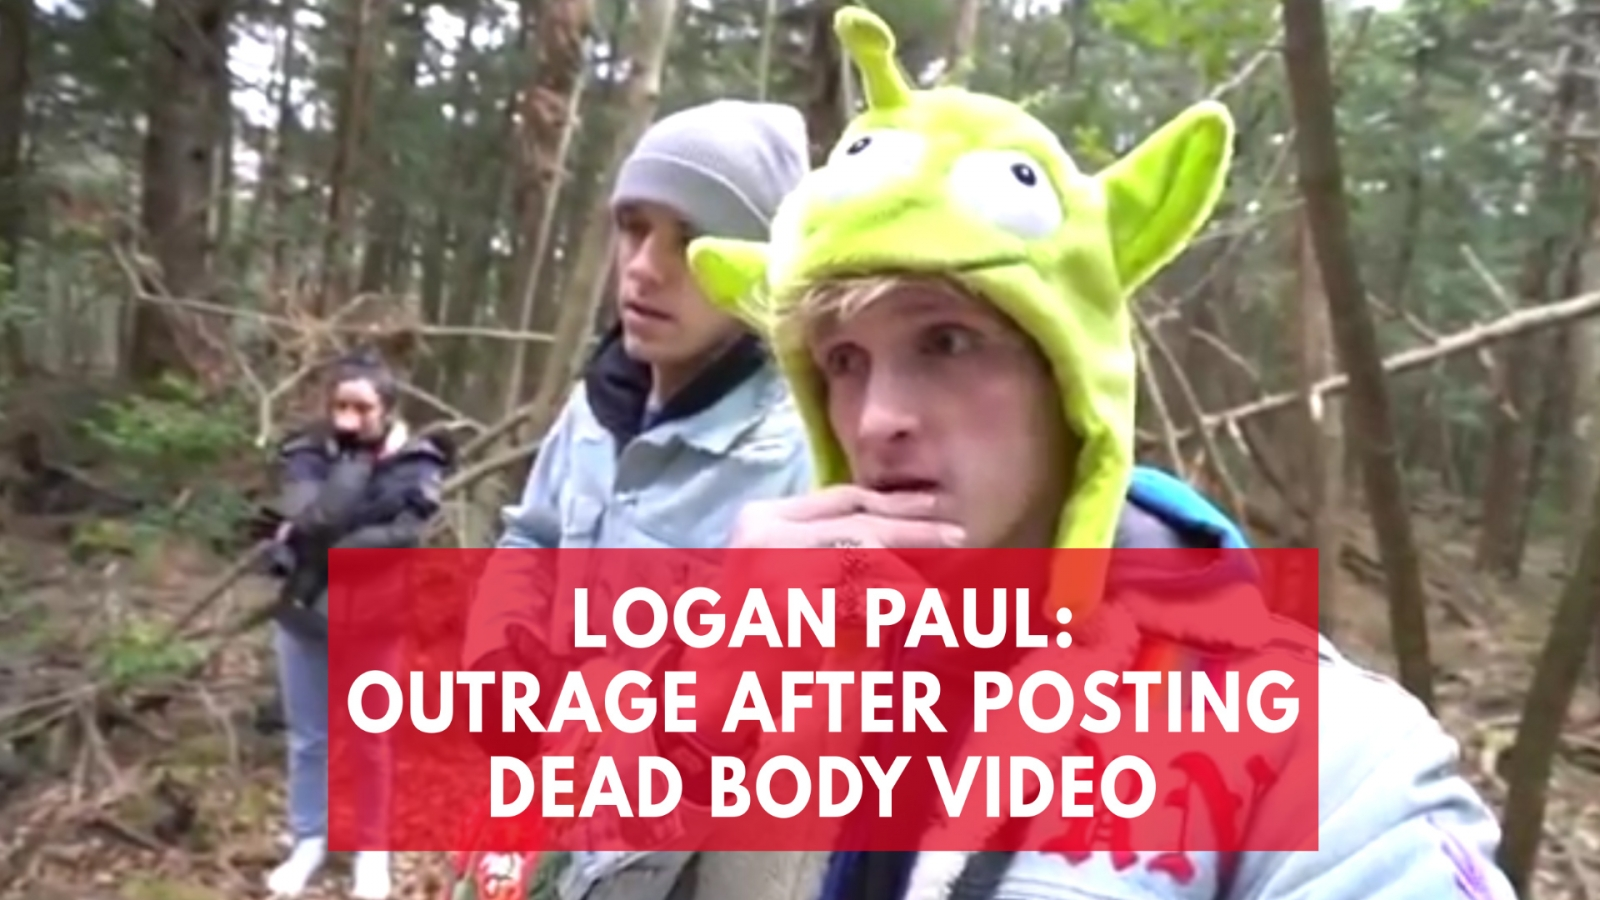 Who Is Logan Paul? Outrage After YouTube Star Posts Dead Body Video